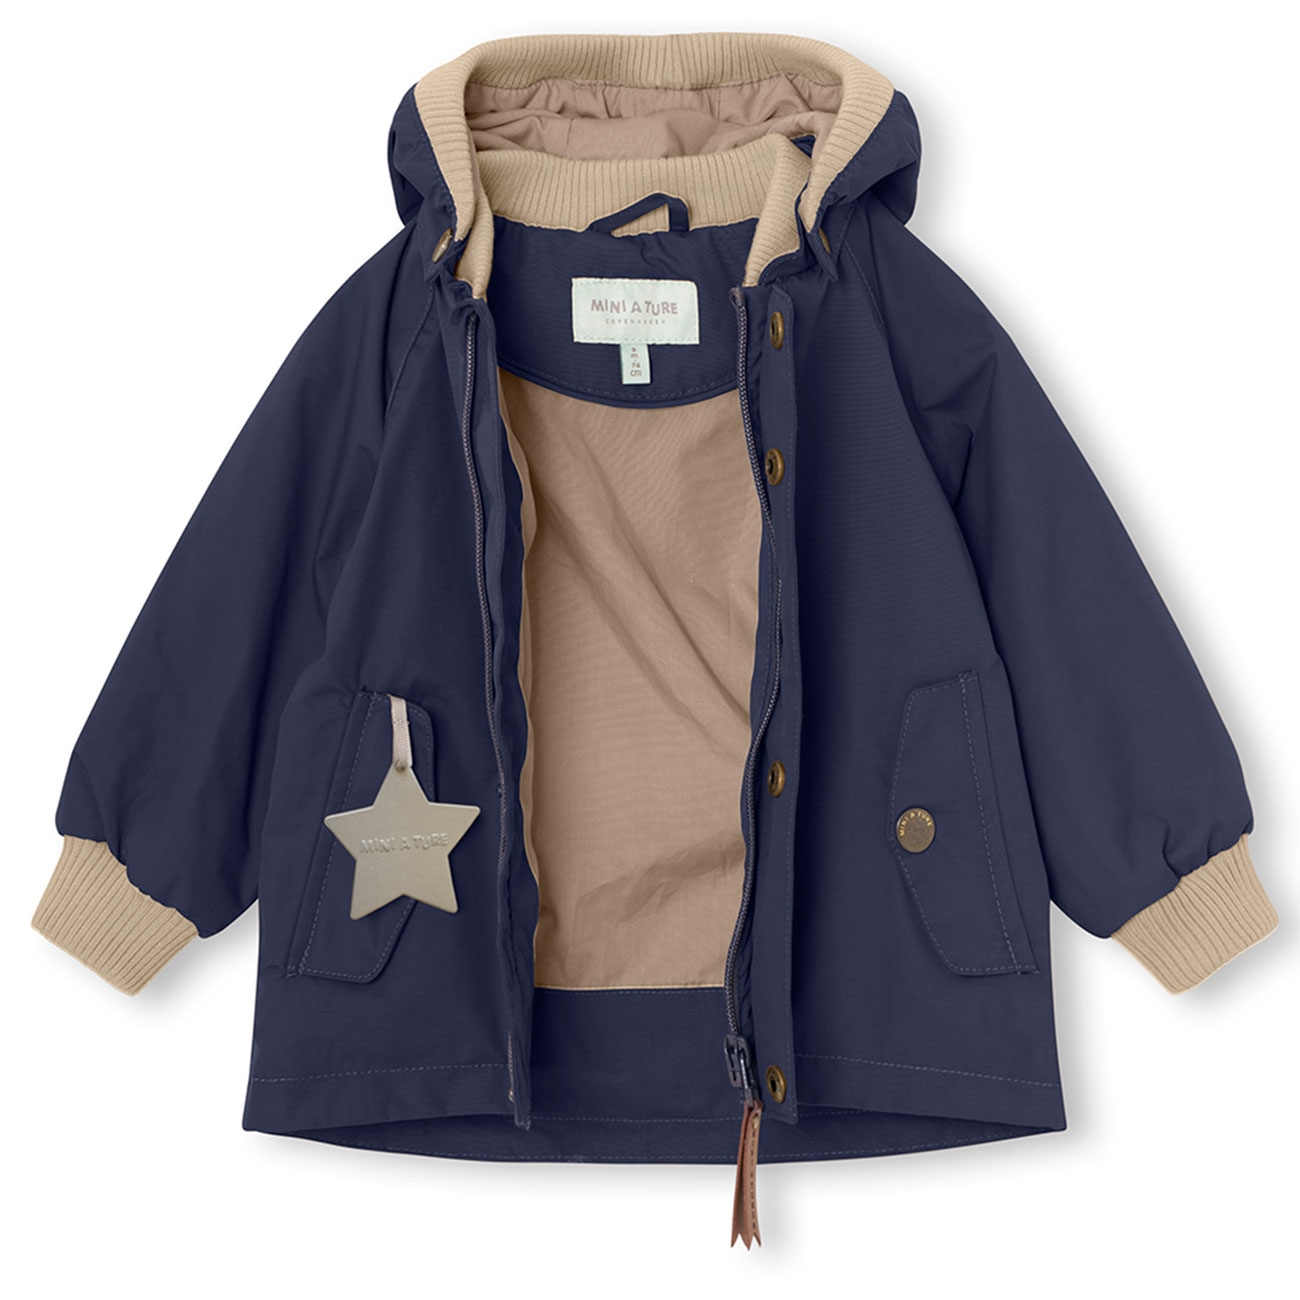 mini-a-ture-jacket-jakke-wally-maritime-blue-moerkeblaa